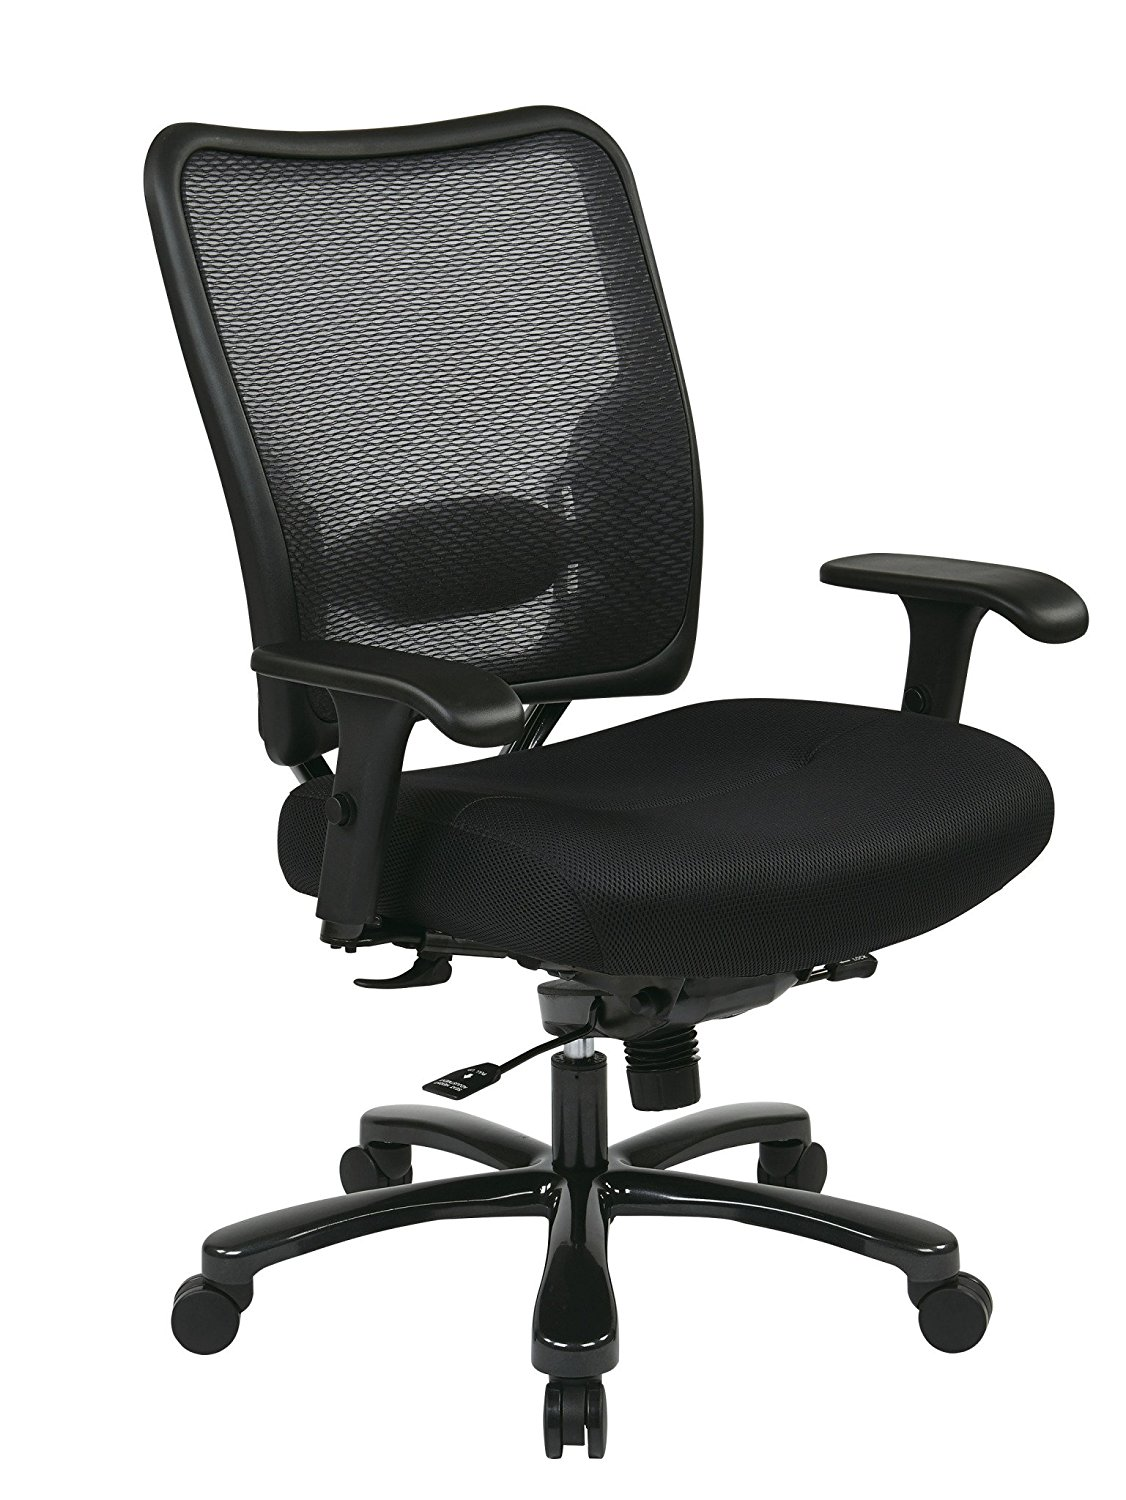 Best Big And Tall Office Chair 4 Best Office Chairs For Tall People In 2017 With Maximum